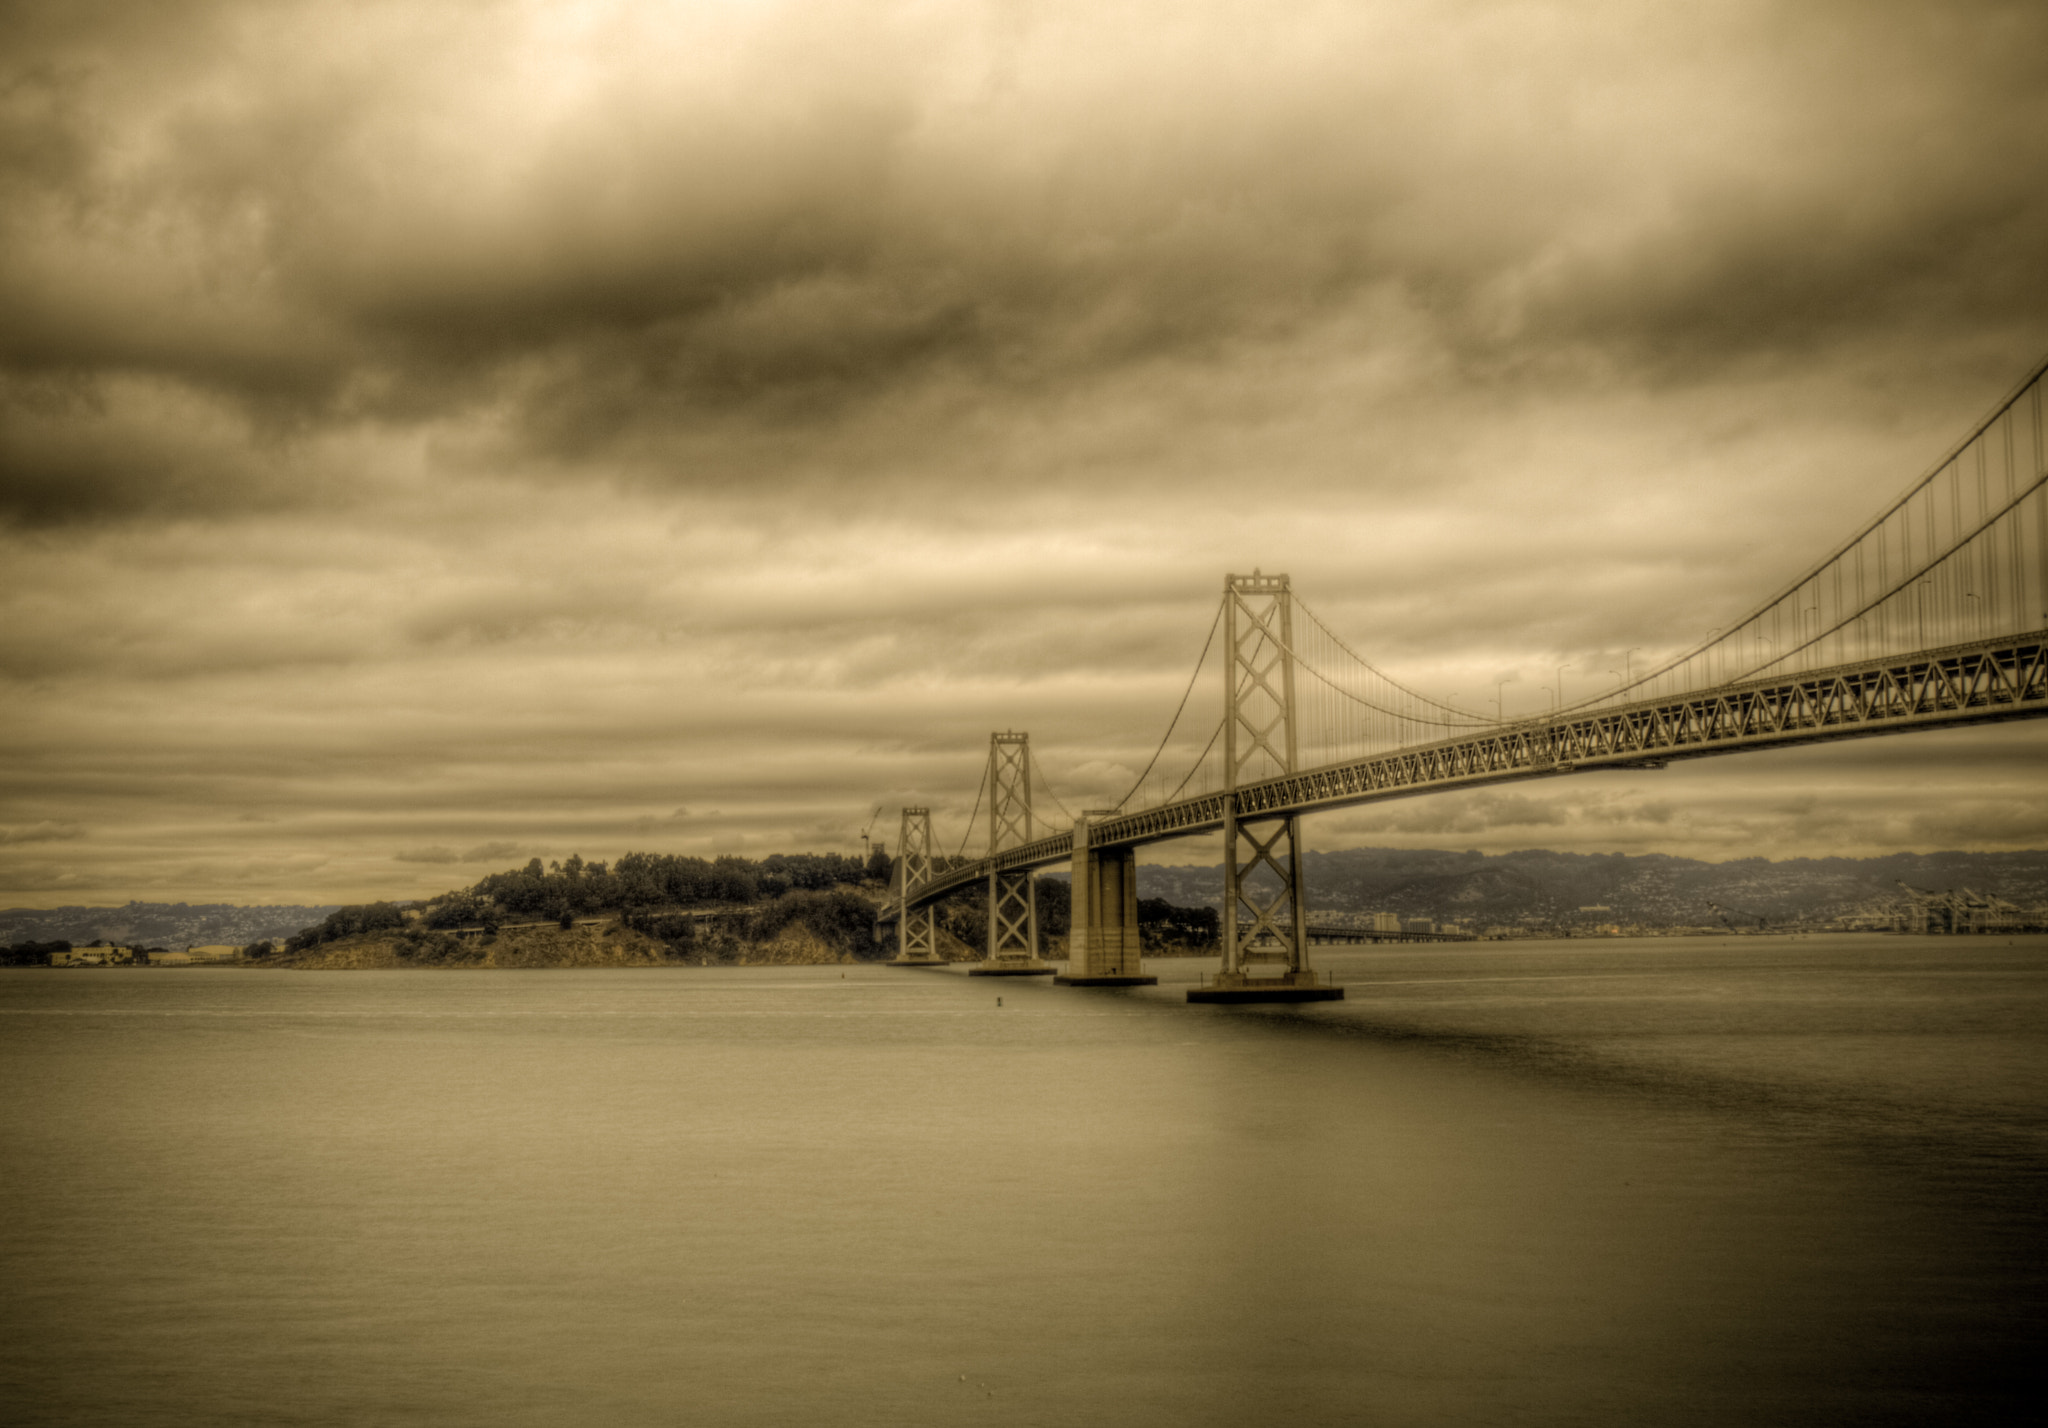 Photograph Bay Bridge by Brent Fishman on 500px